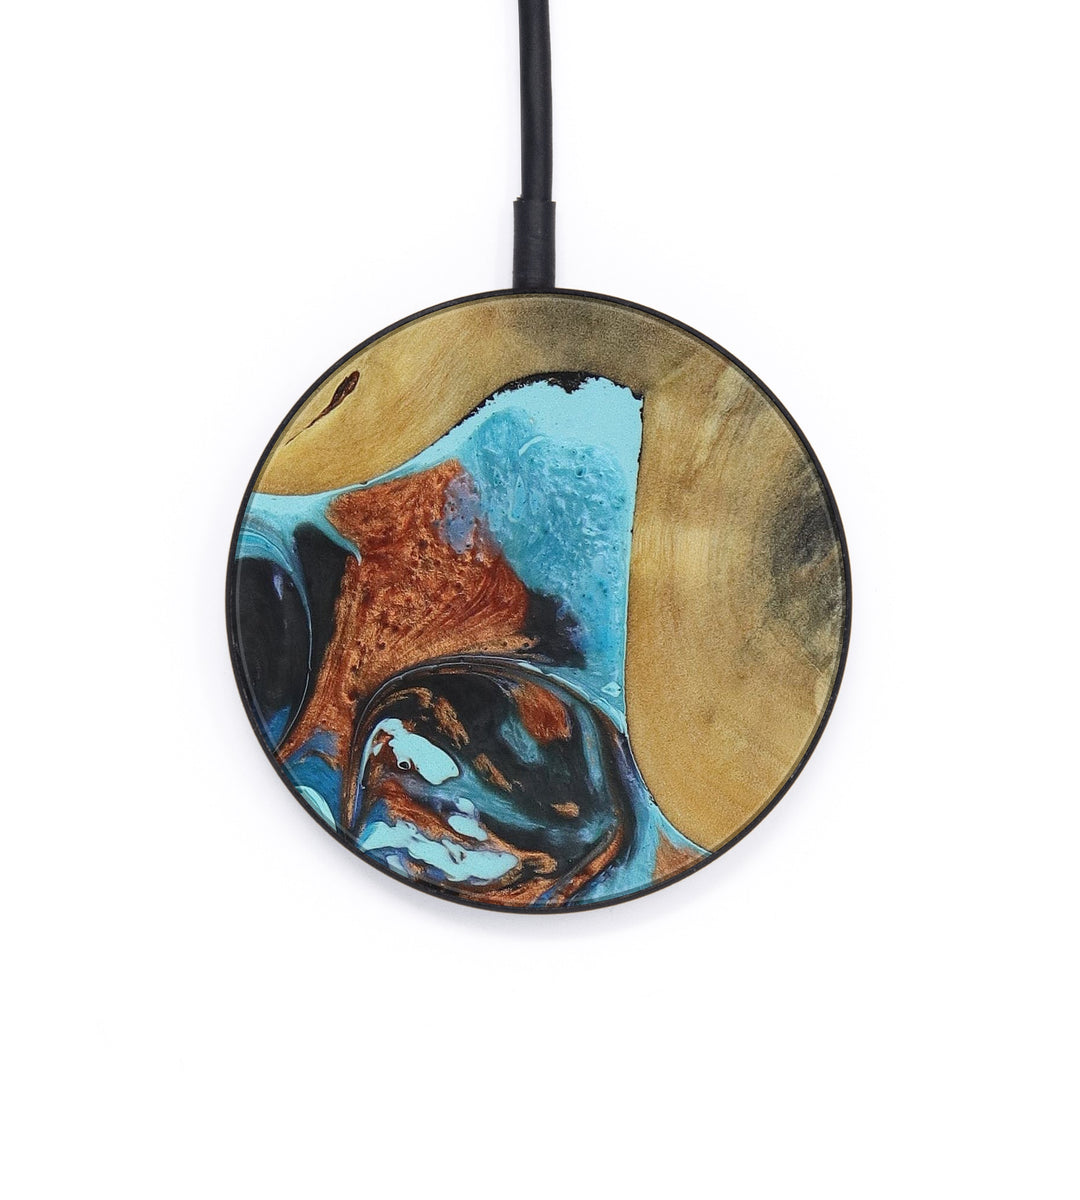 Circle Wood+Resin Wireless Charger - Ashlen (Teal & Gold, 406098)